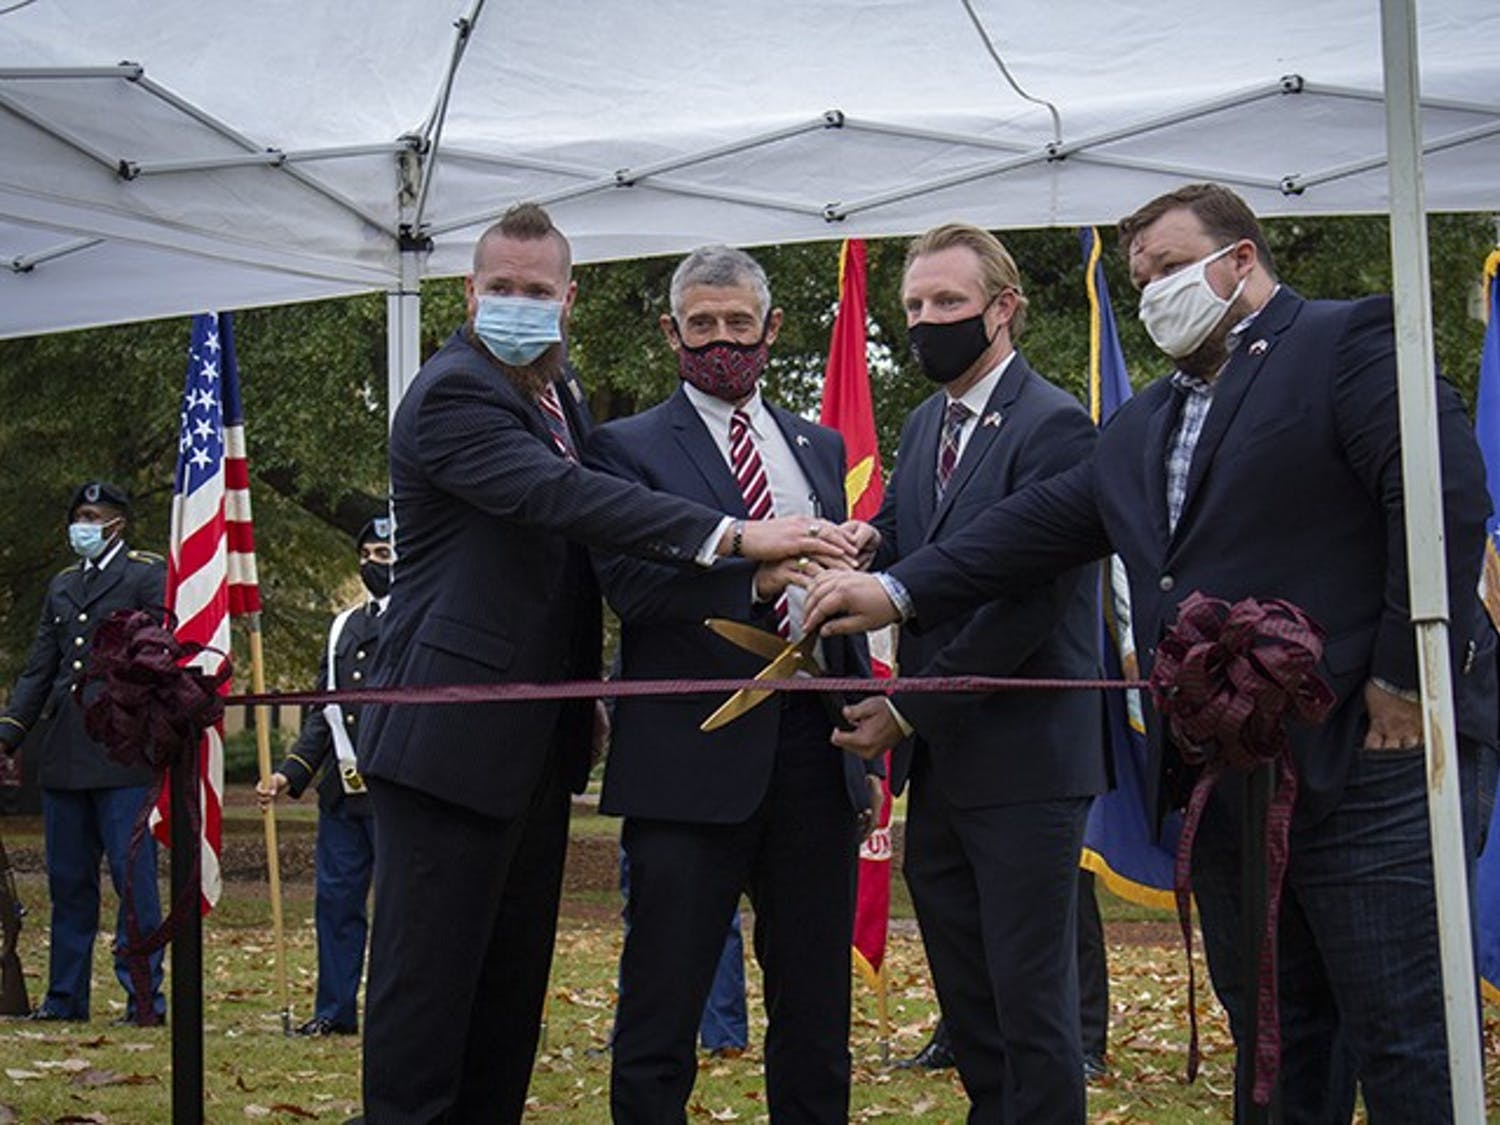 From left to right: Brooks Herring, President Bob Caslen, Jared Evans and Scott Craig cut the ribbon to the new Veteran and Military Center of Excellence at the Horseshoe on Nov. 11, 2020.